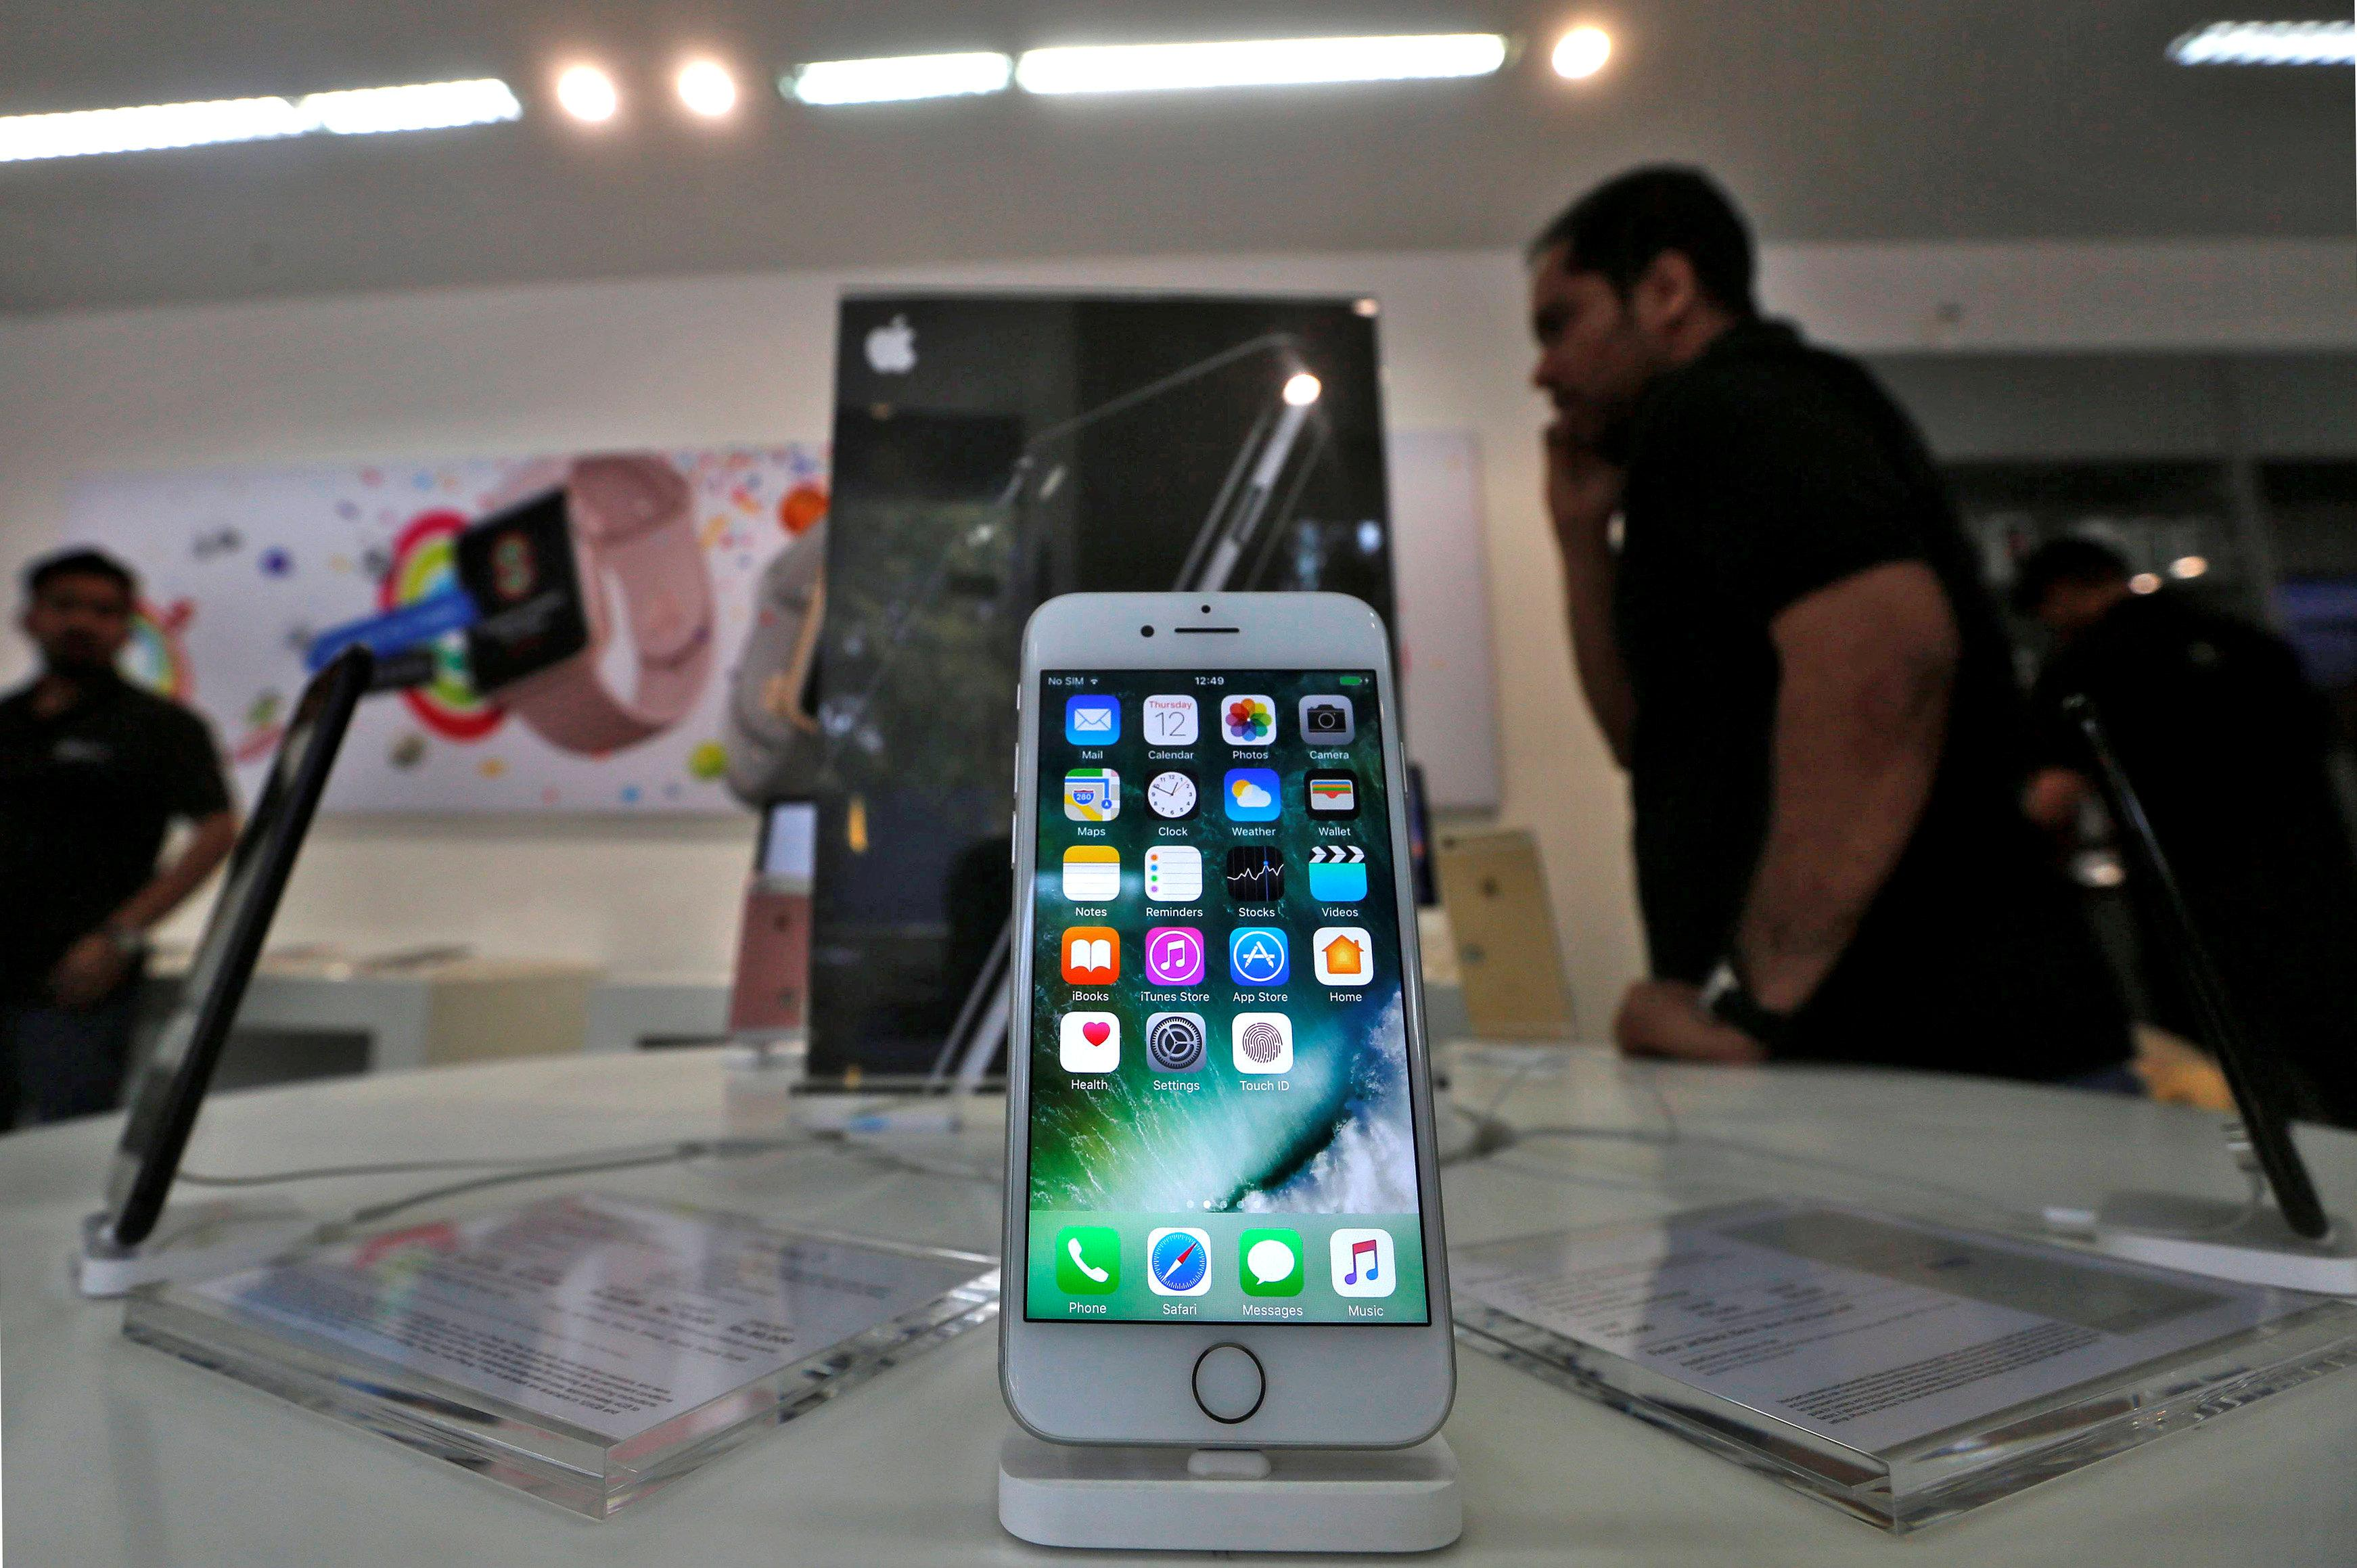 An iPhone is seen on display at a kiosk at an Apple reseller store in Mumbai, India, January 12, 2017. Picture taken January 12, 2017.  Shailesh Andrade/File photo